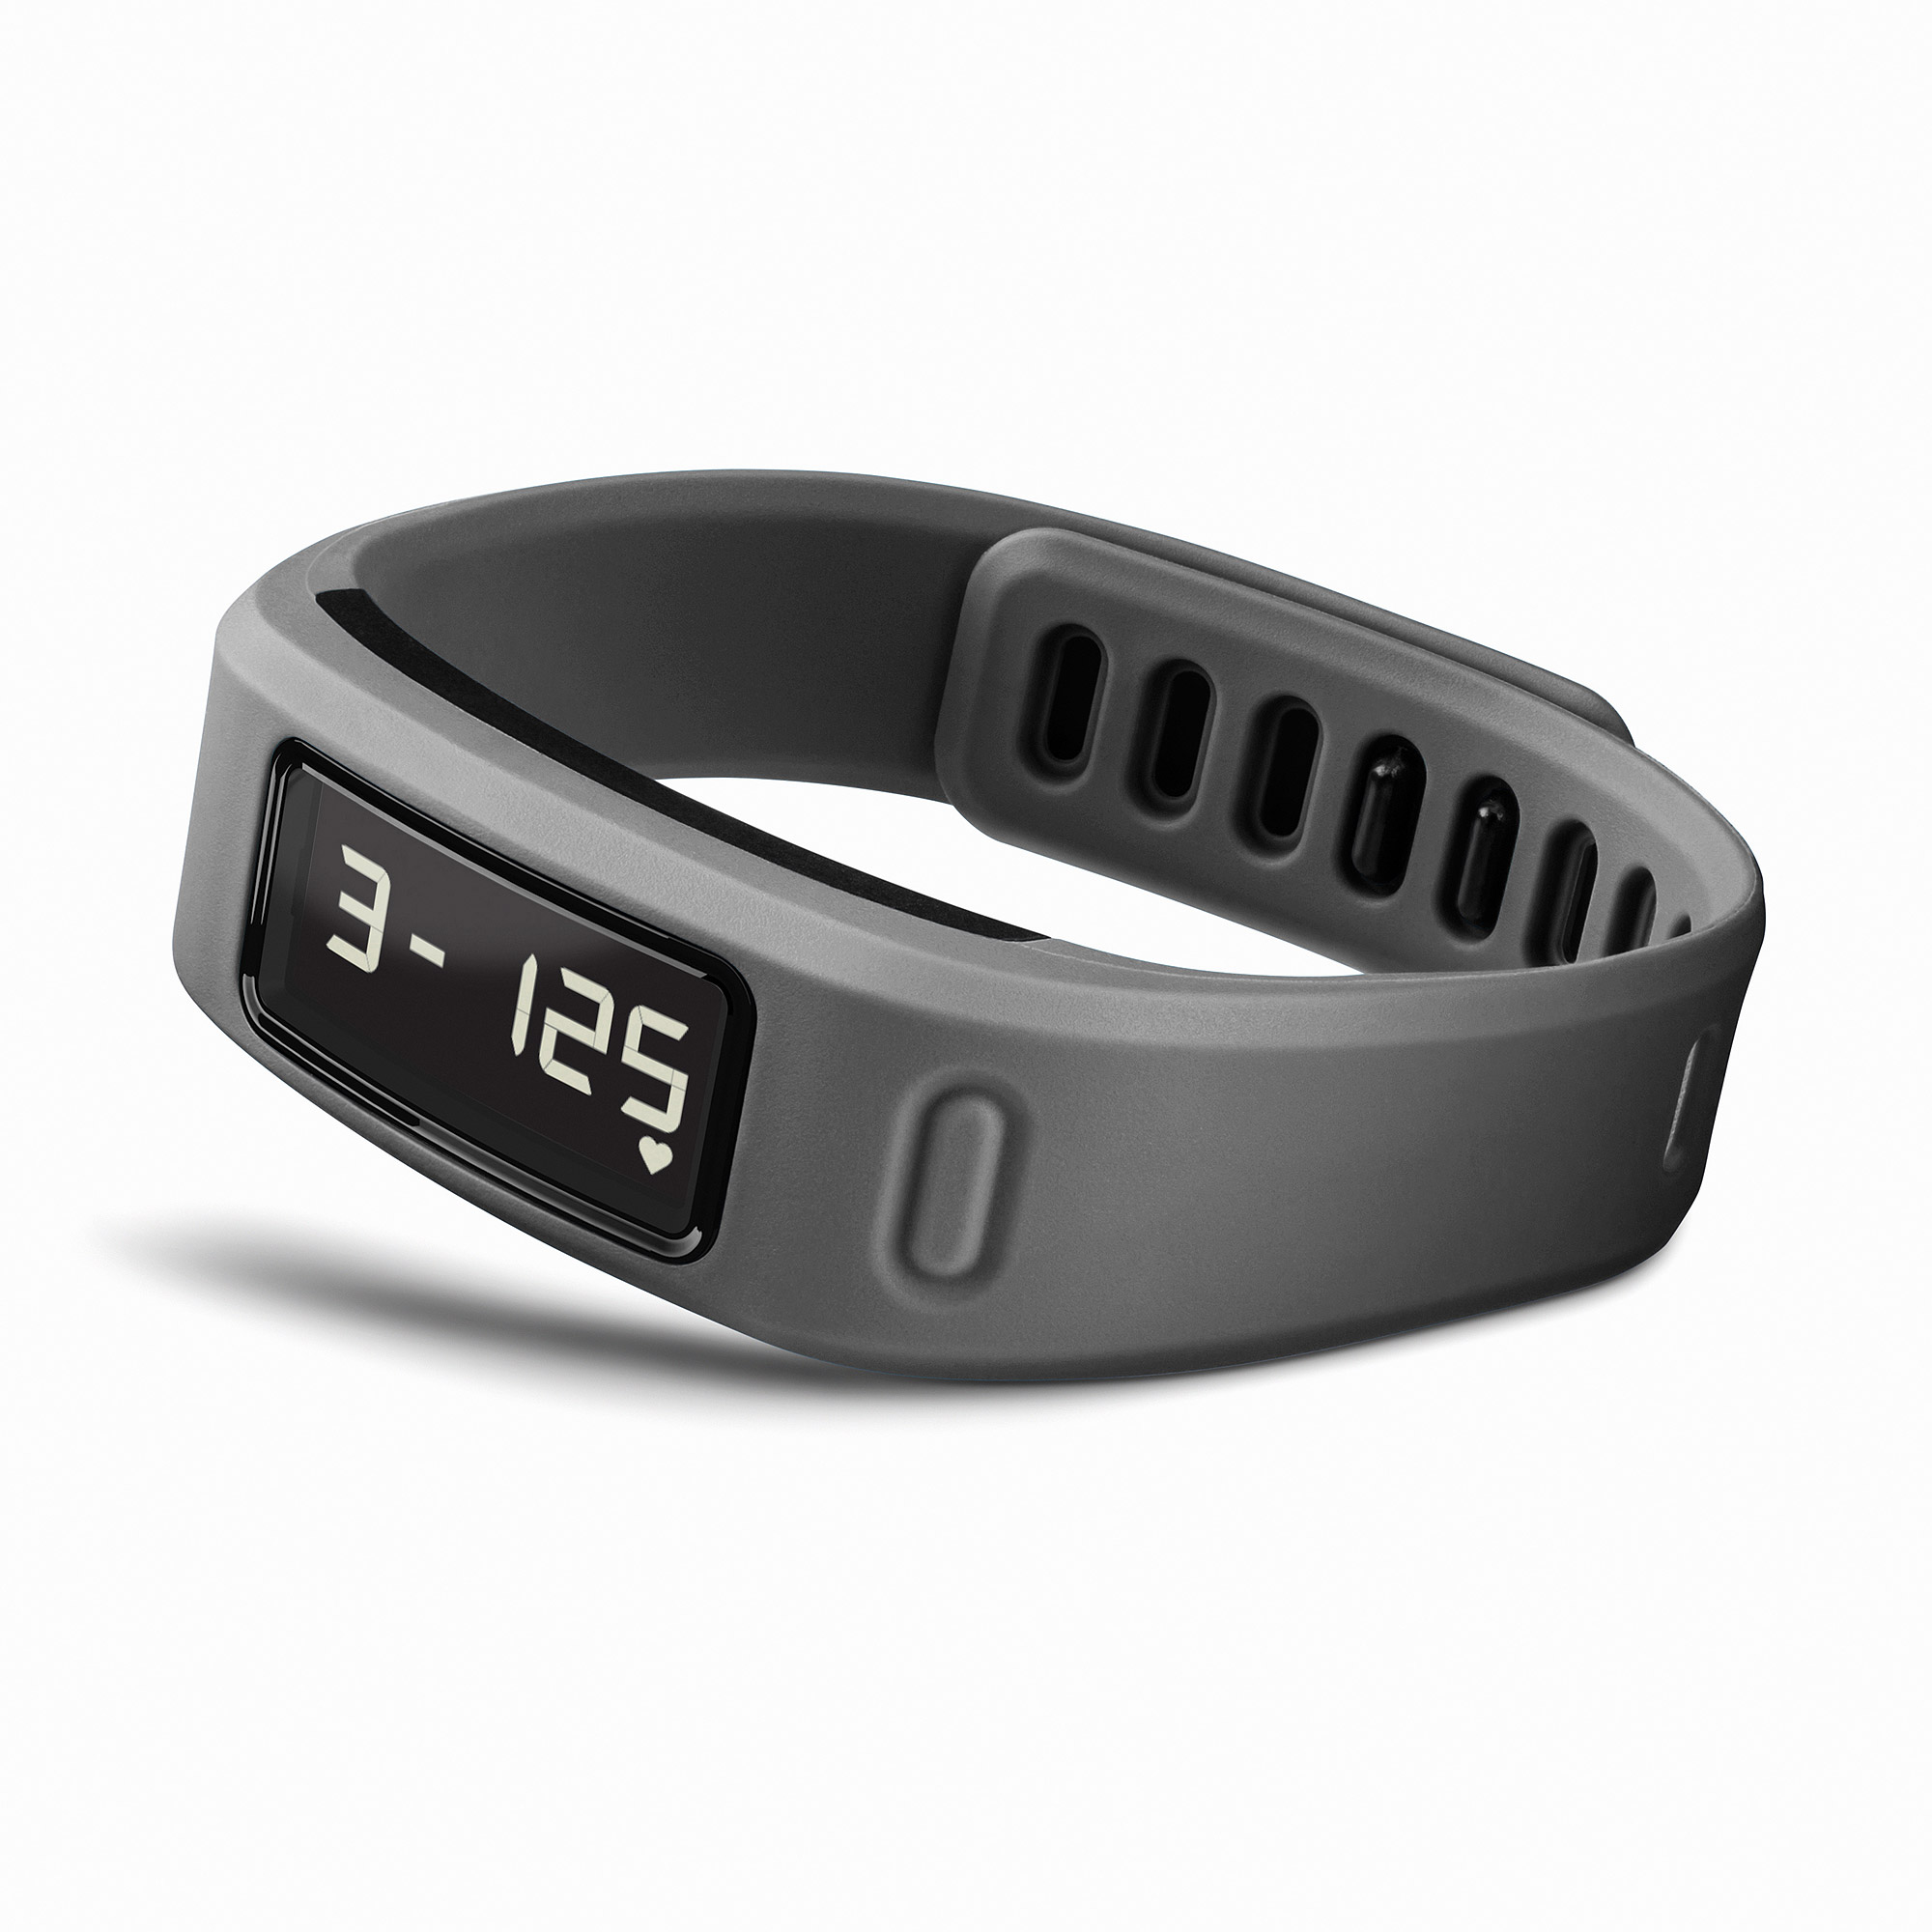 Garmin Vivofit Fitness Band, Available in multiple colors